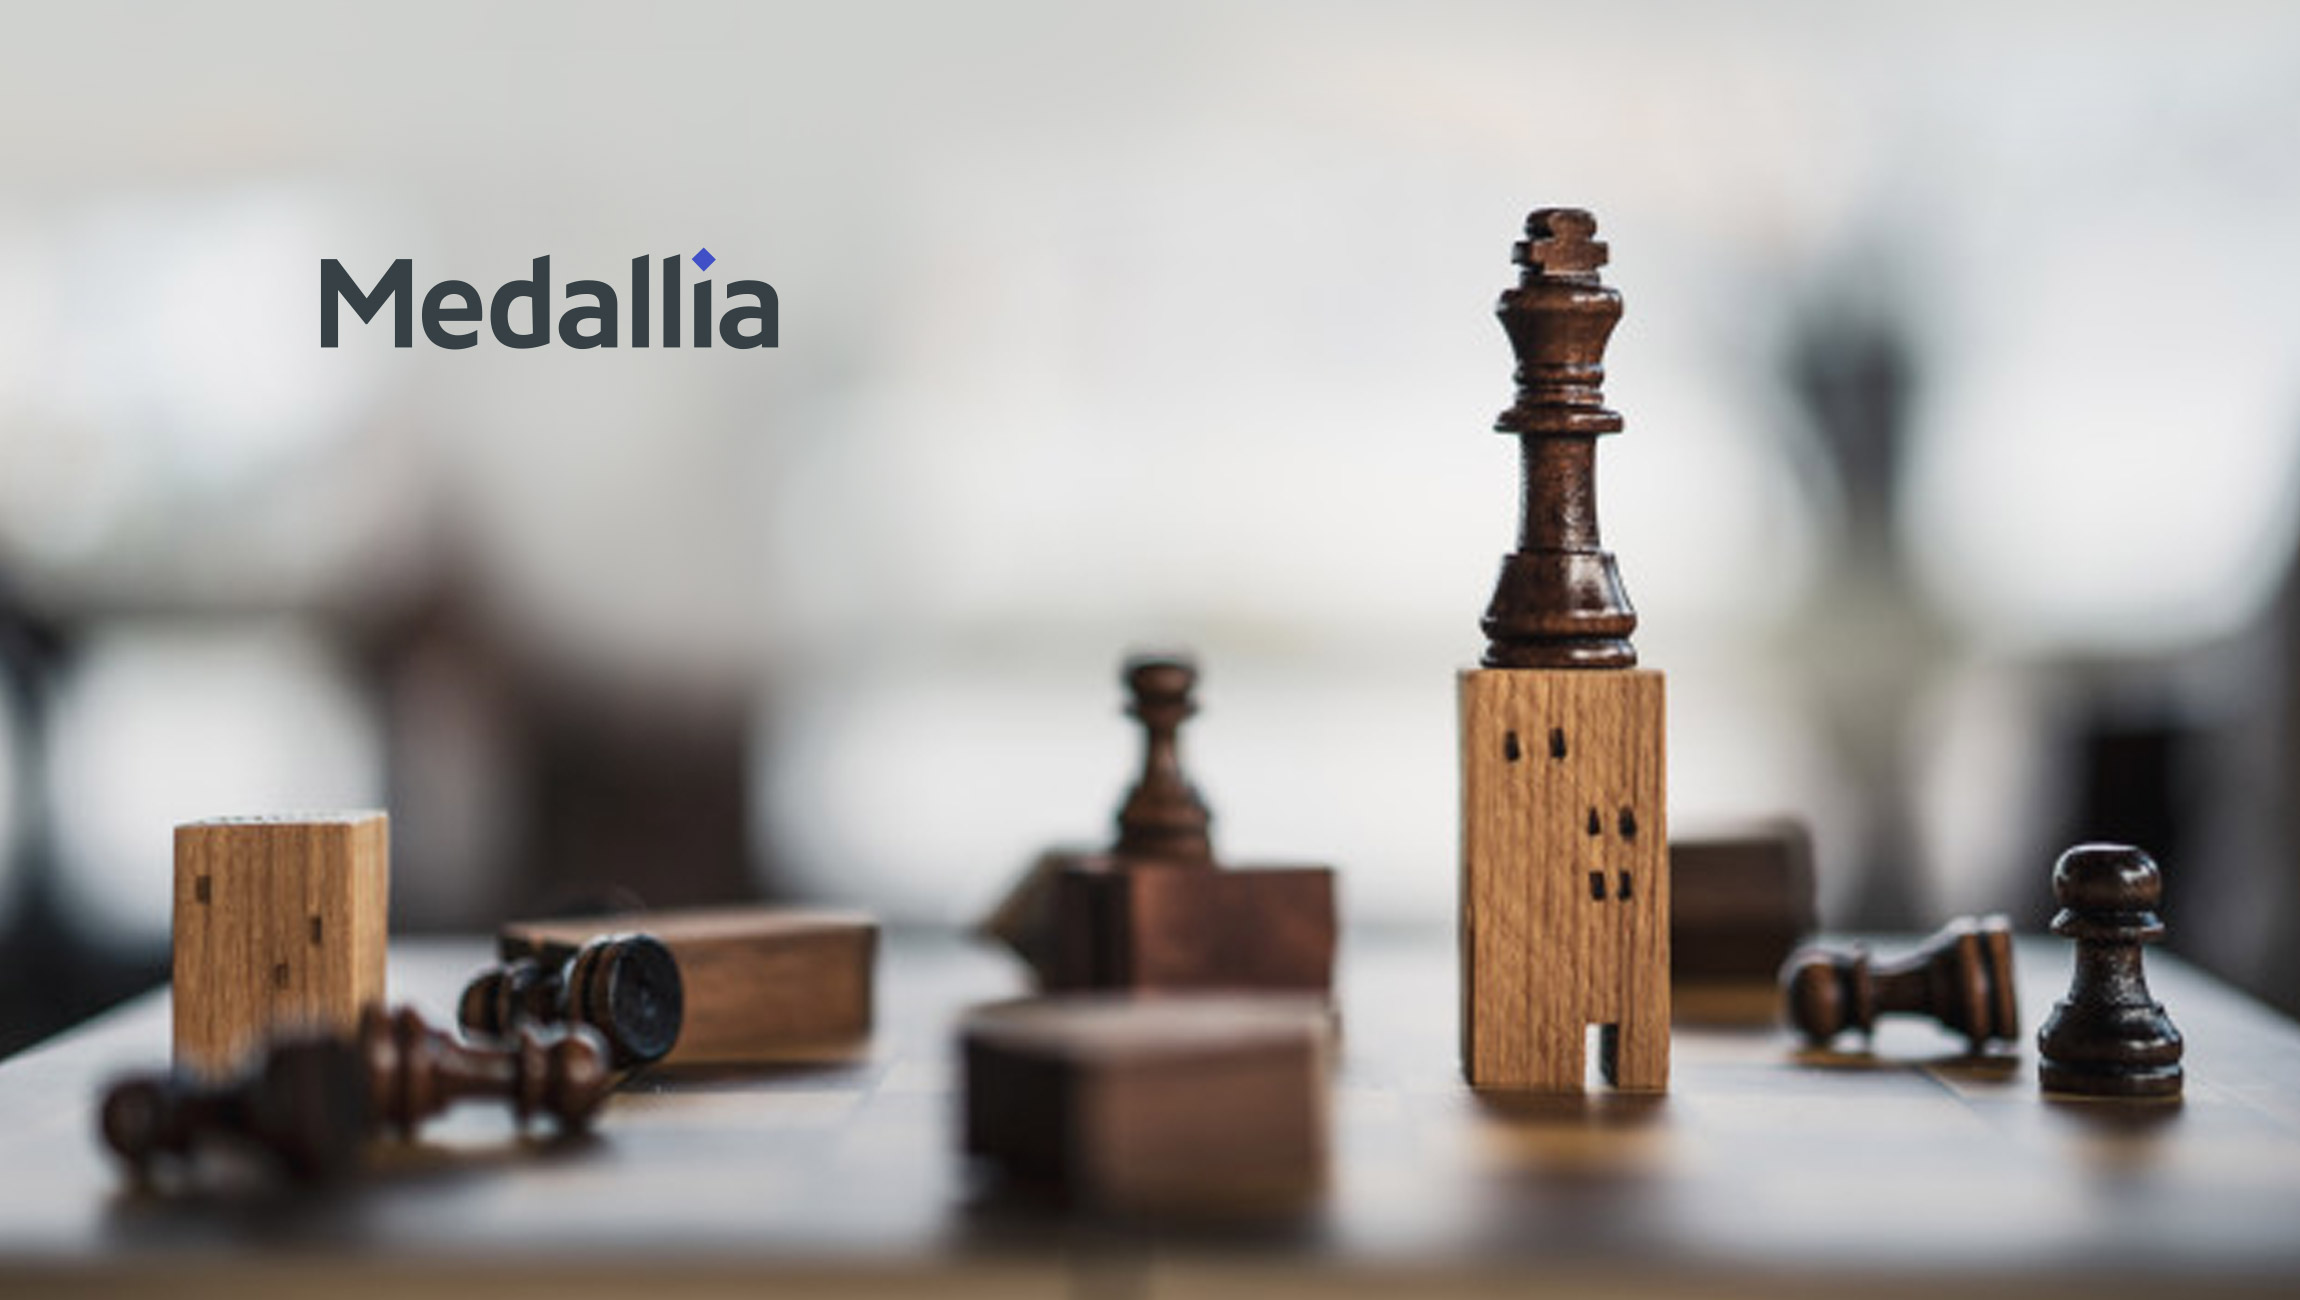 Experience Management Leader Medallia to Acquire Customer Success Leader Strikedeck